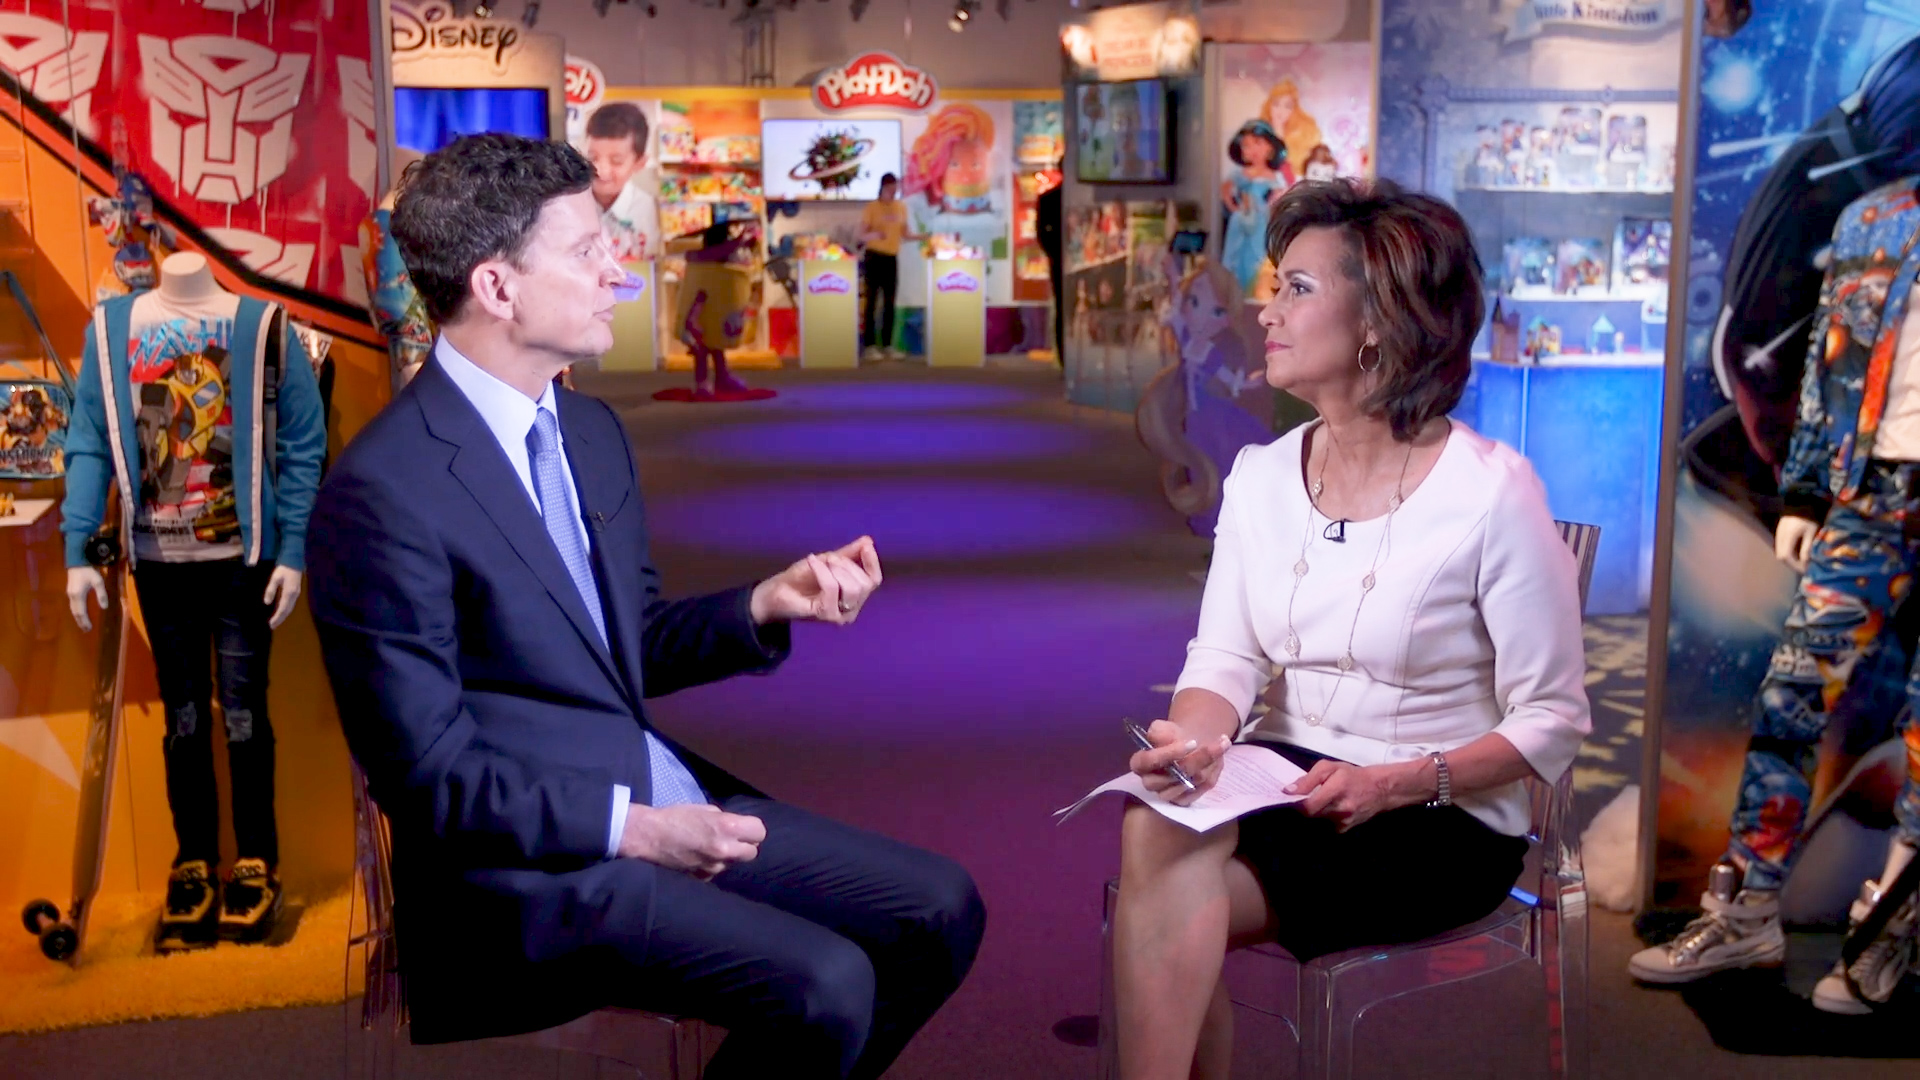 Susie Gharib interviews Hasbro CEO Brian Goldner at the 2018 Toy Fair in New York.